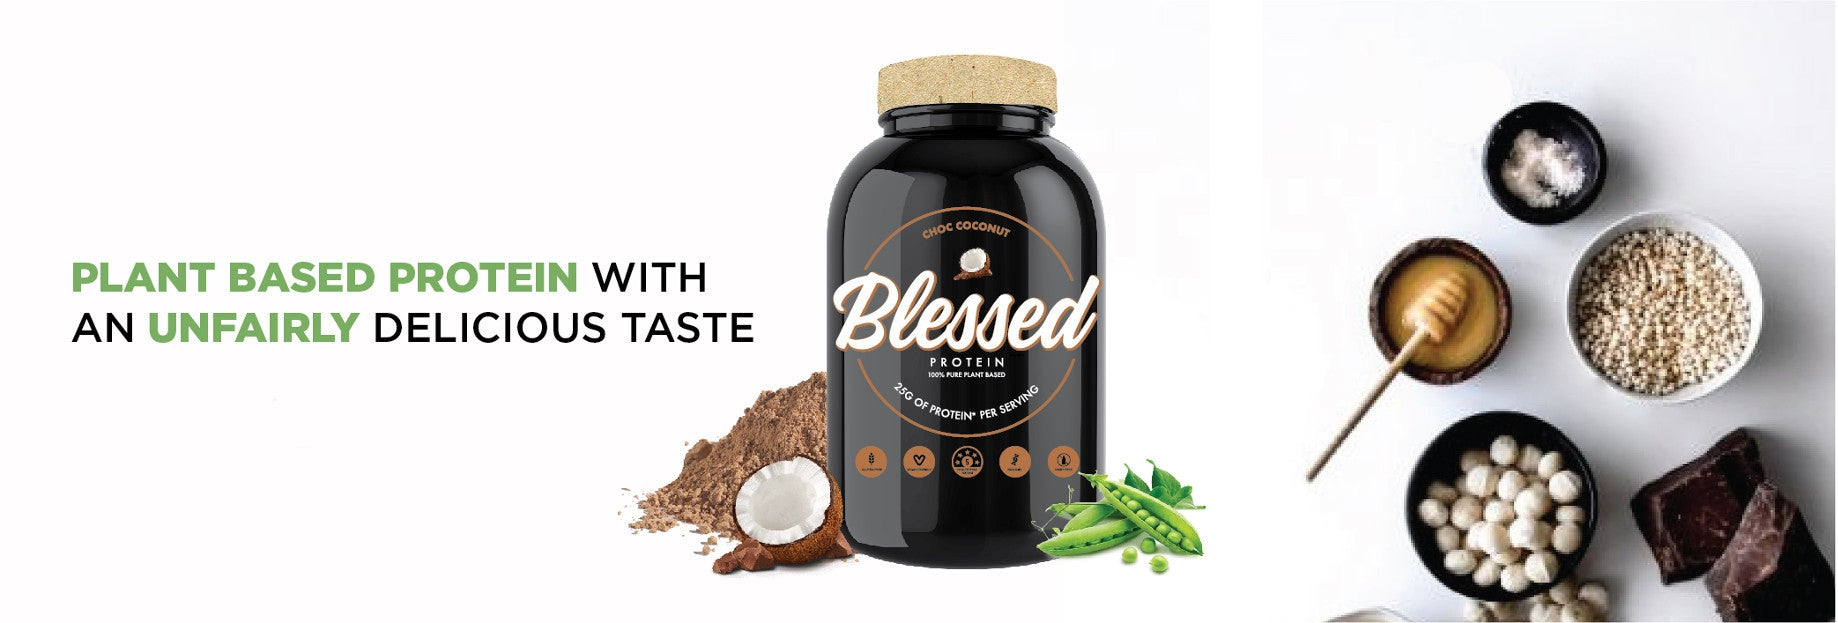 Blessed Protein By Clear Vegan | EHPlabs | MVMNT LMTD | Australia